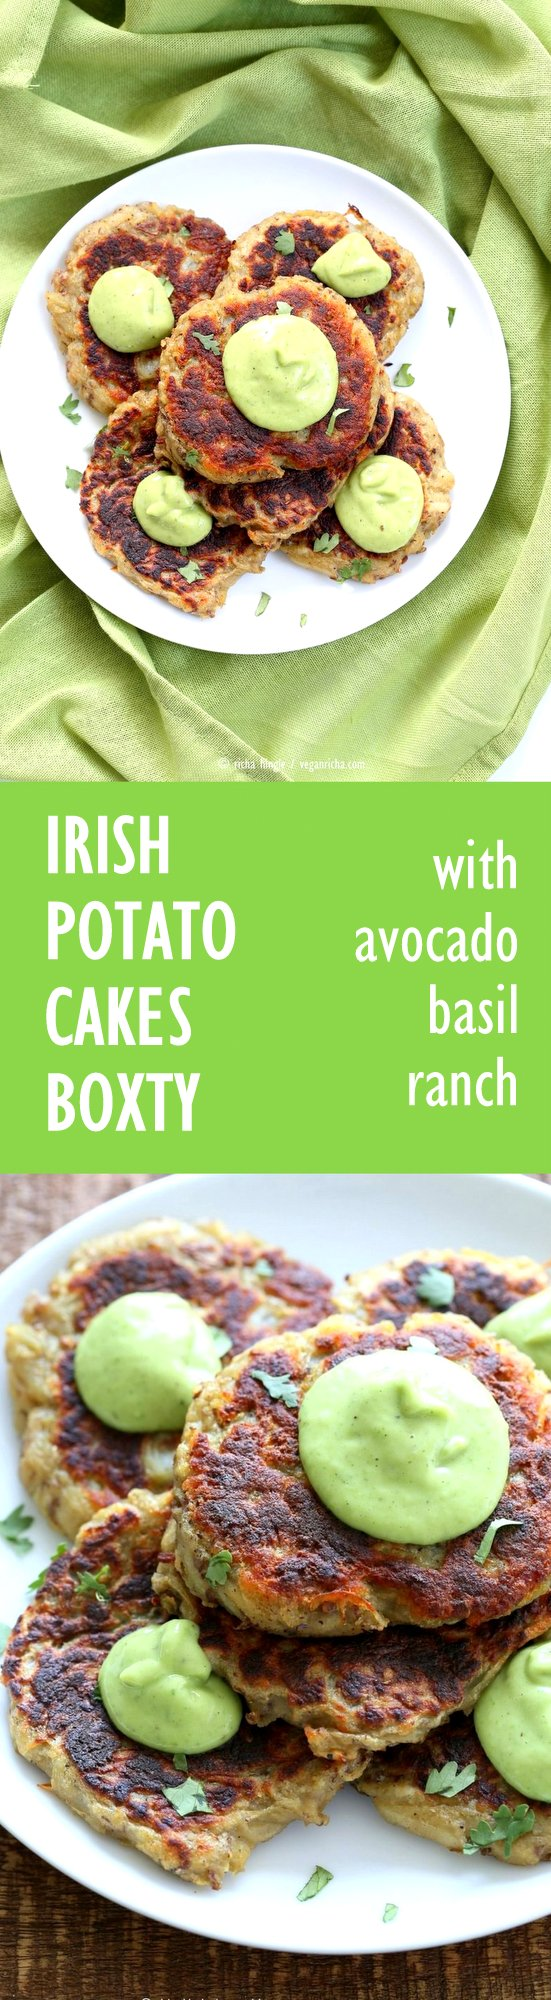 Traditional Irish potato cakes known as boxty, made eggless and vegan. Serve with avocado basil garlic ranch dressing. #Vegan #Soyfree #Recipe | VeganRicha.com